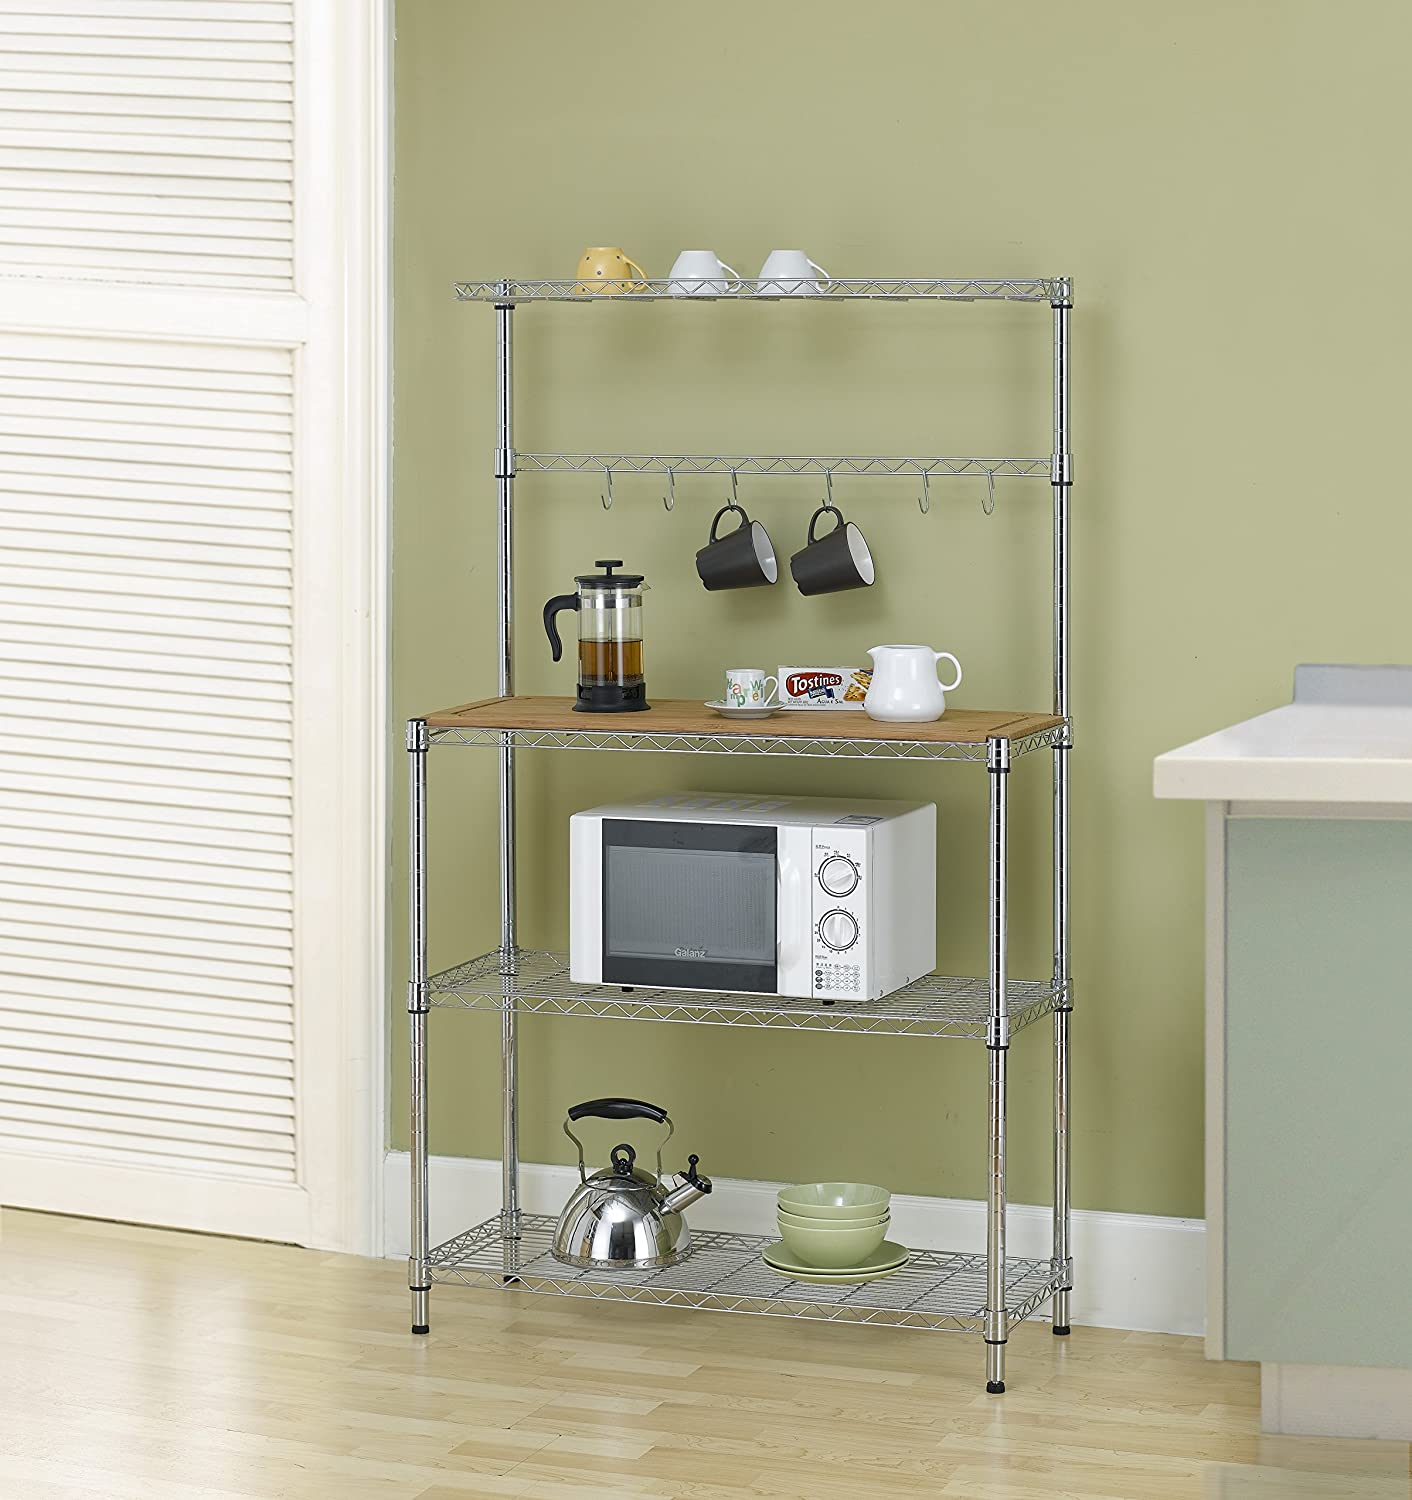 Adjustable Kitchen Rack / Cart - Chrome Shelves and Thicken Bamboo Cutting Board